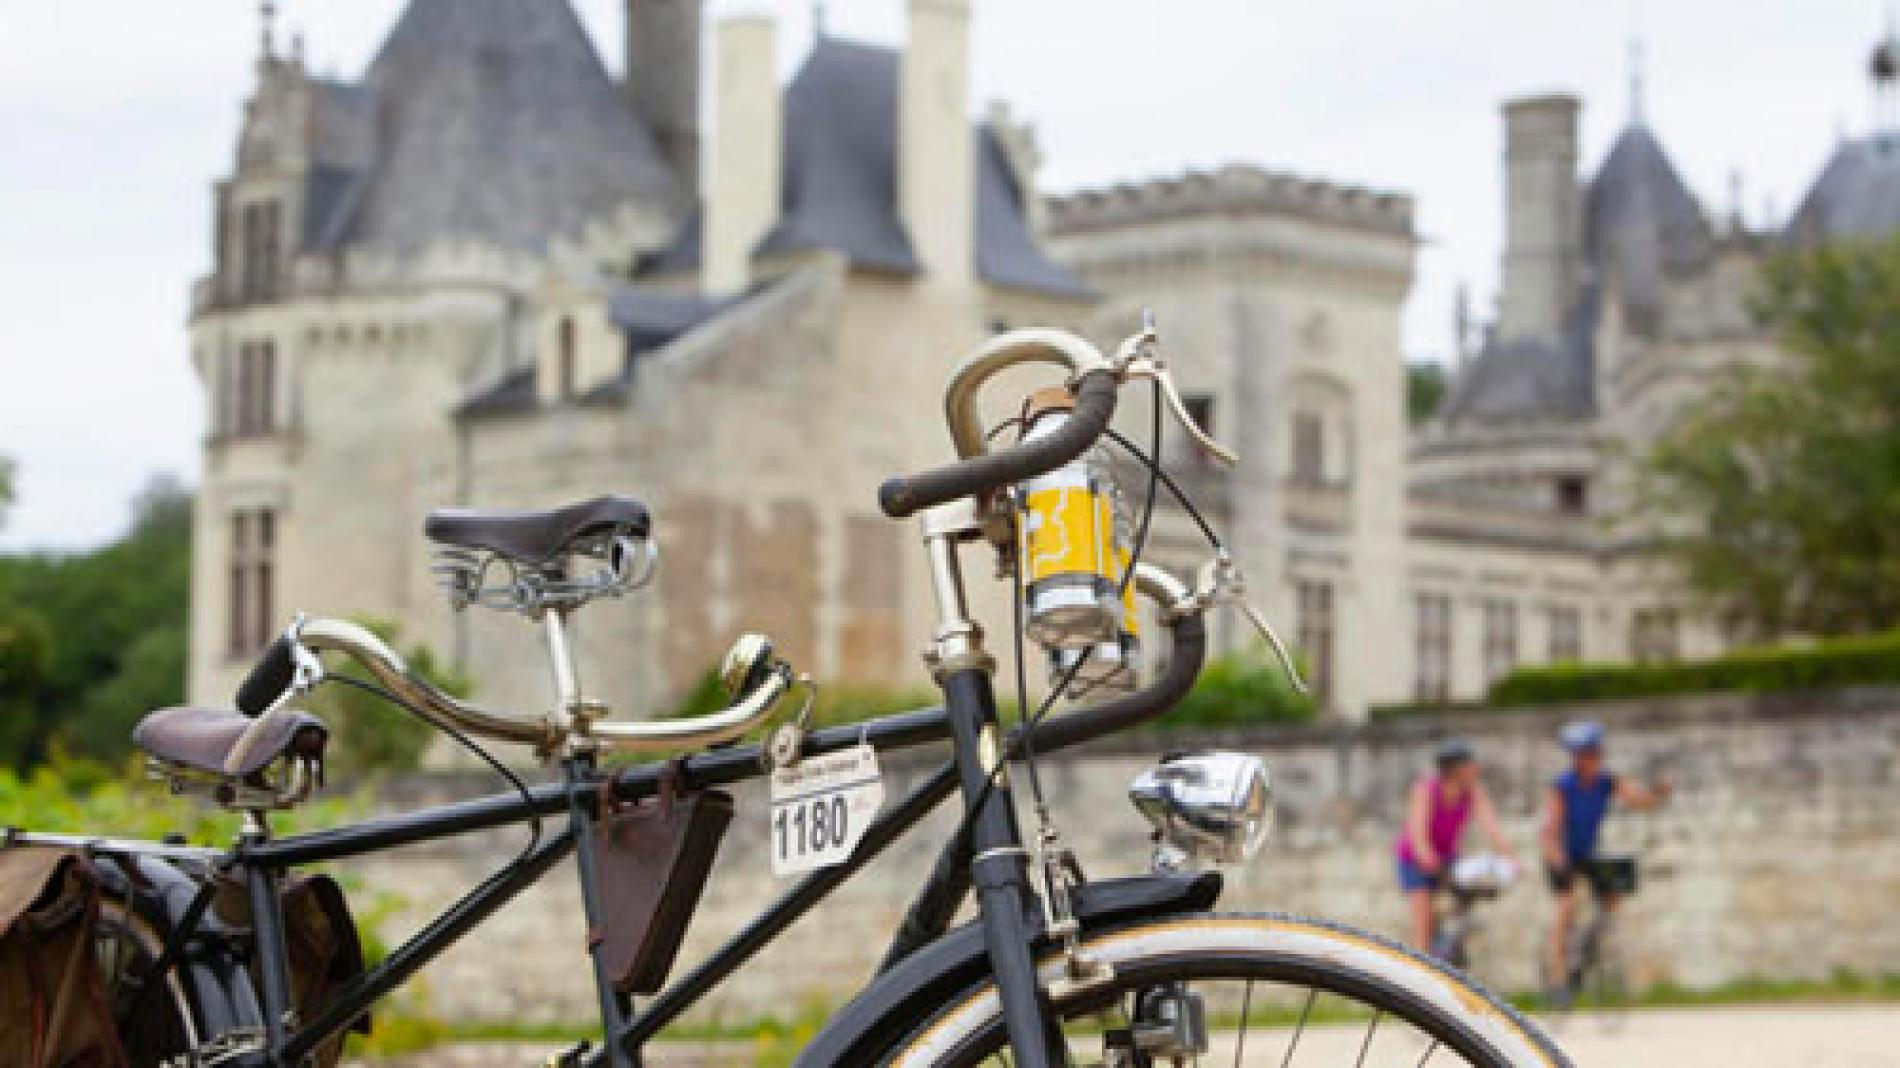 ANJOU VINTAGE CYCLES